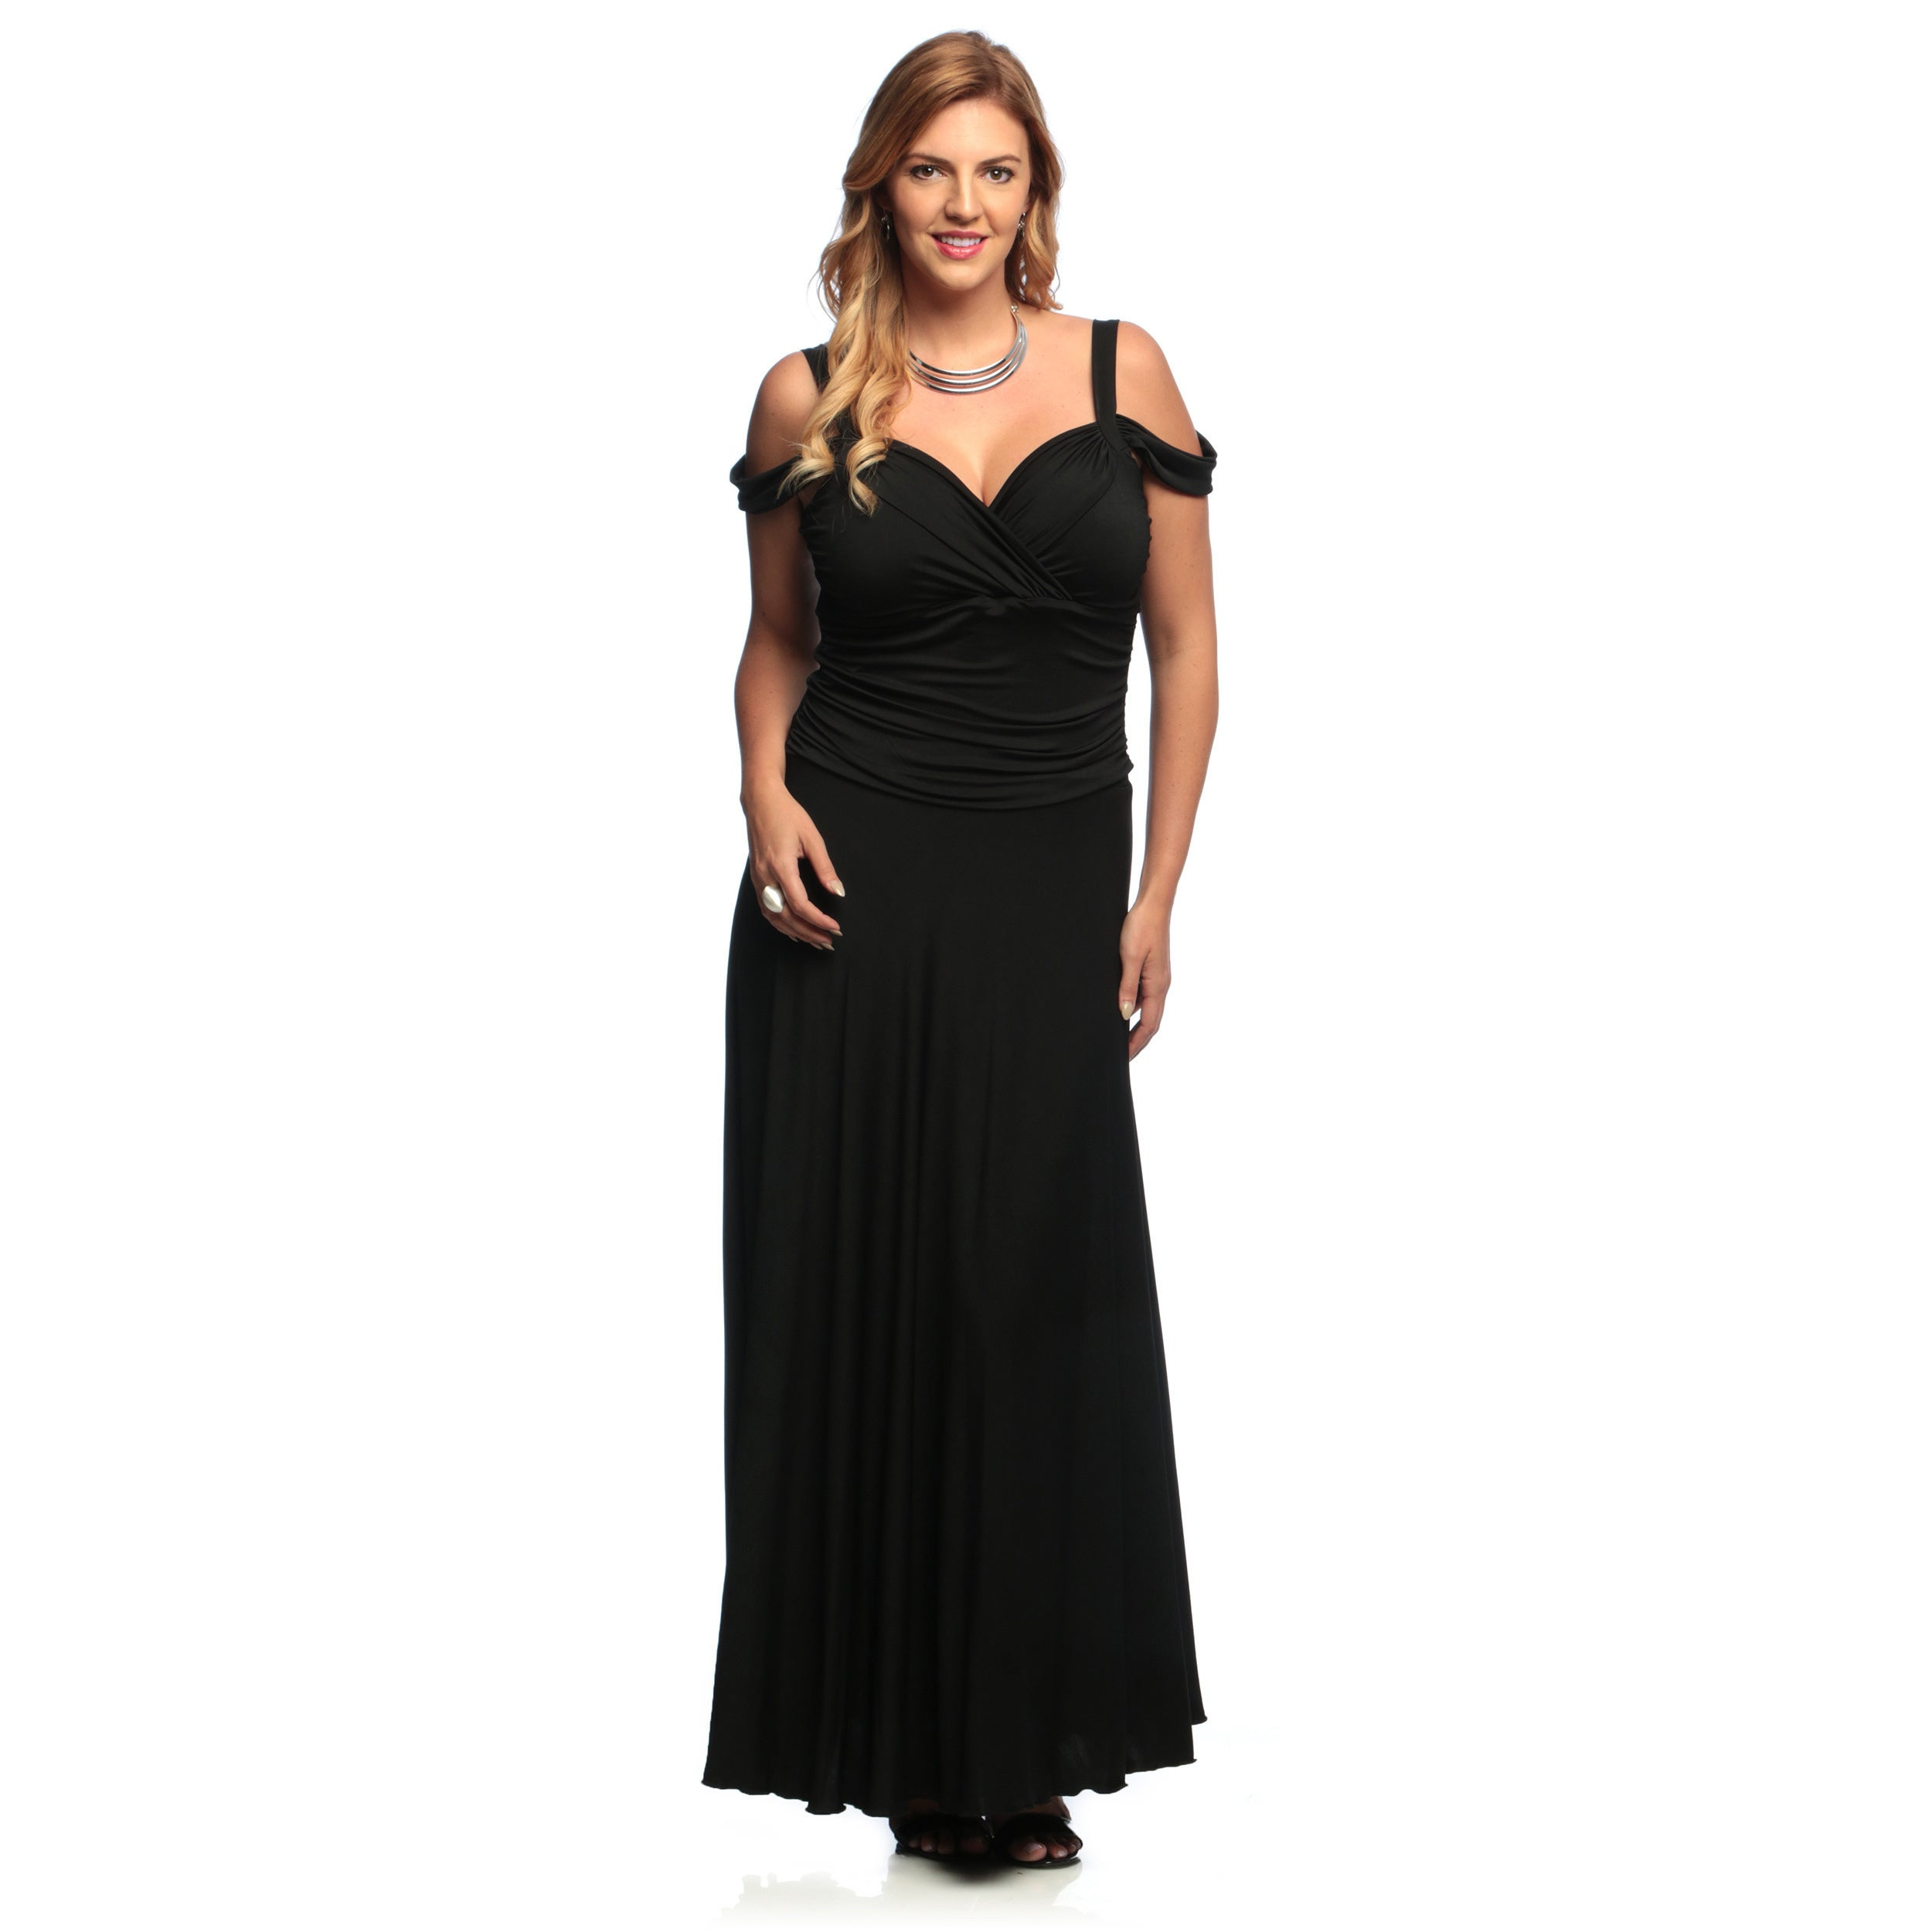 681b8abd1983 Shop Evanese Women's Plus Size Elegant Long Dress - Free Shipping ...